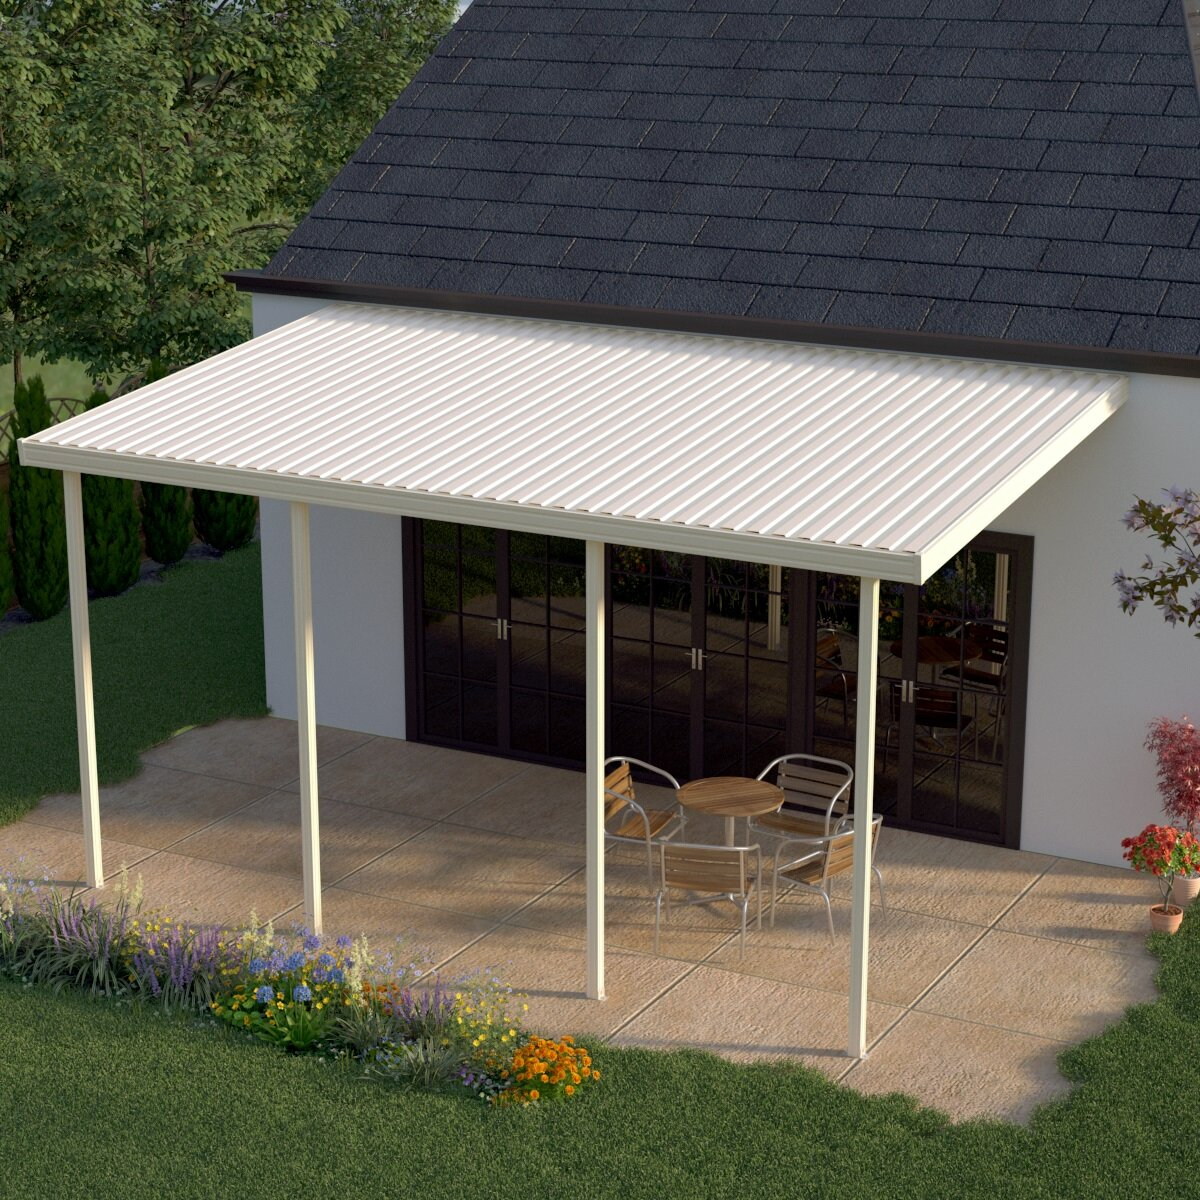 W x 12 ft. D Patio Awning u0026 Reviews | Wayfair & HeritagePatios 20 ft. W x 12 ft. D Patio Awning u0026 Reviews | Wayfair